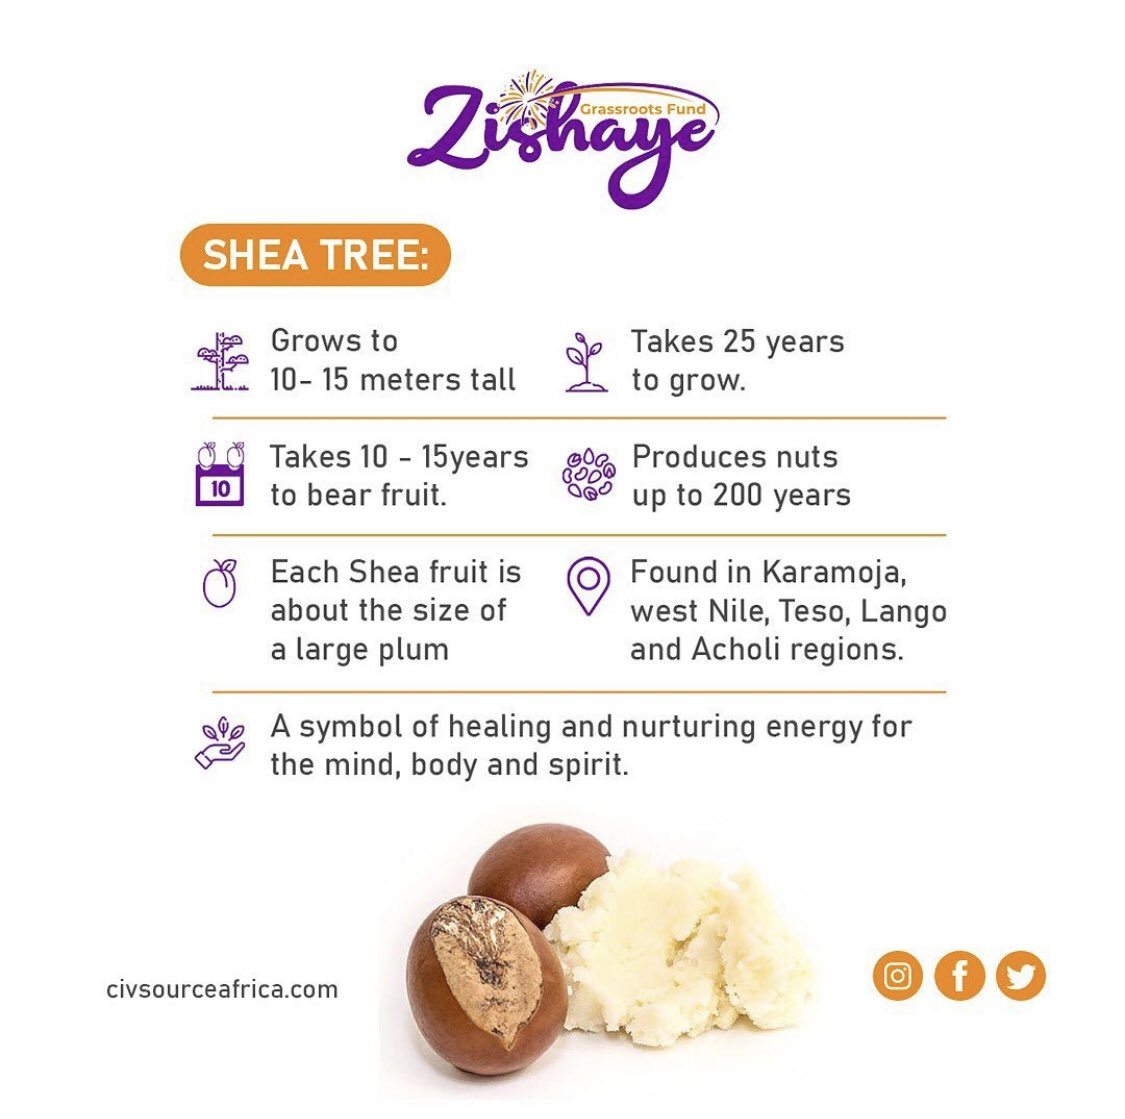 How much do you know about #sheatrees. Here's just a snippet courtesy of @civsourceafrica. @ZishayeCivFund #zishayegrassroots #nature #biodiversity #okerecity #protectsheatrees #shea #sheabutter